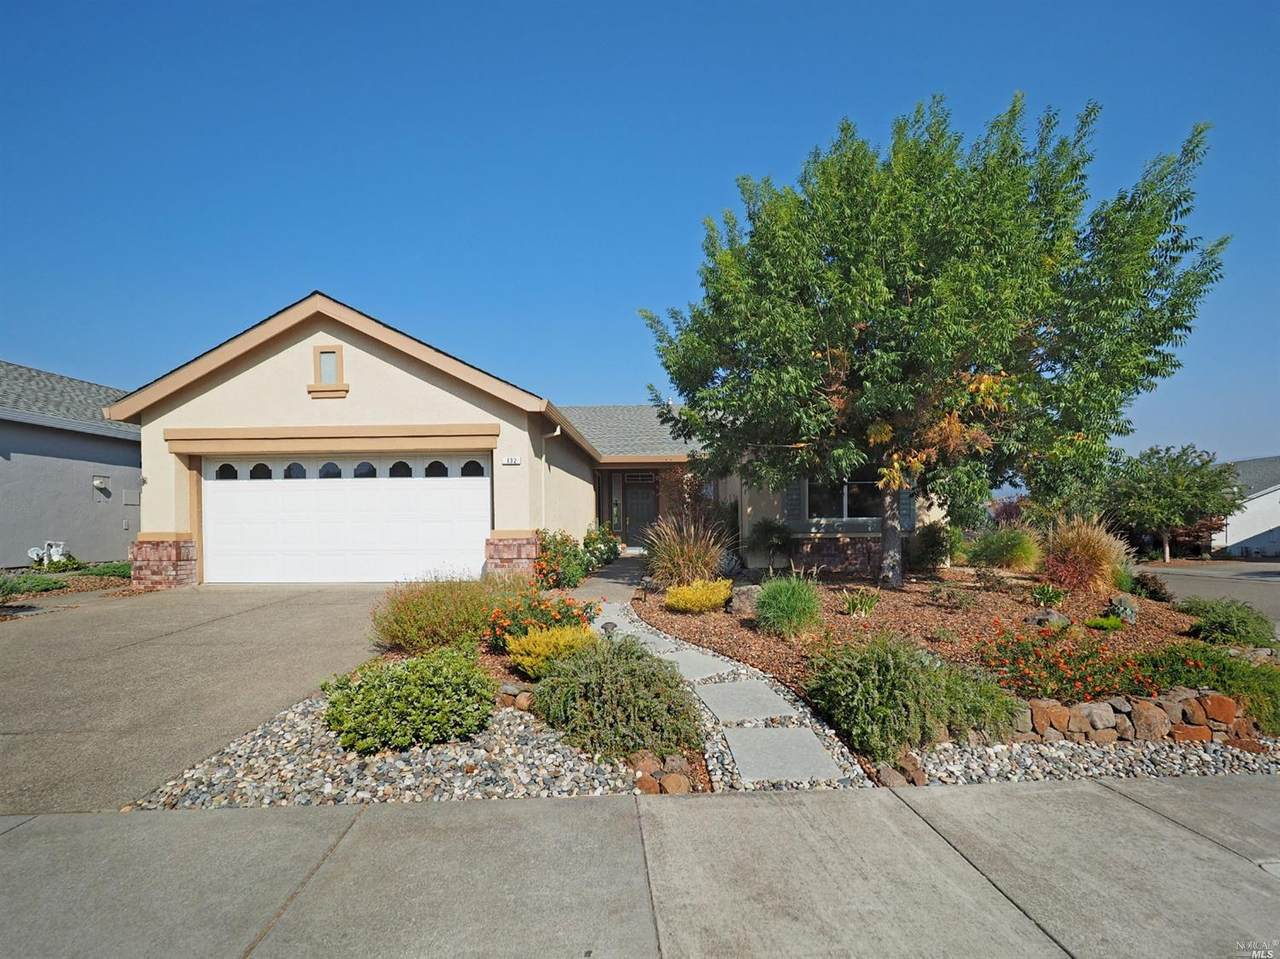 132 Clover Springs Drive - Photo 1